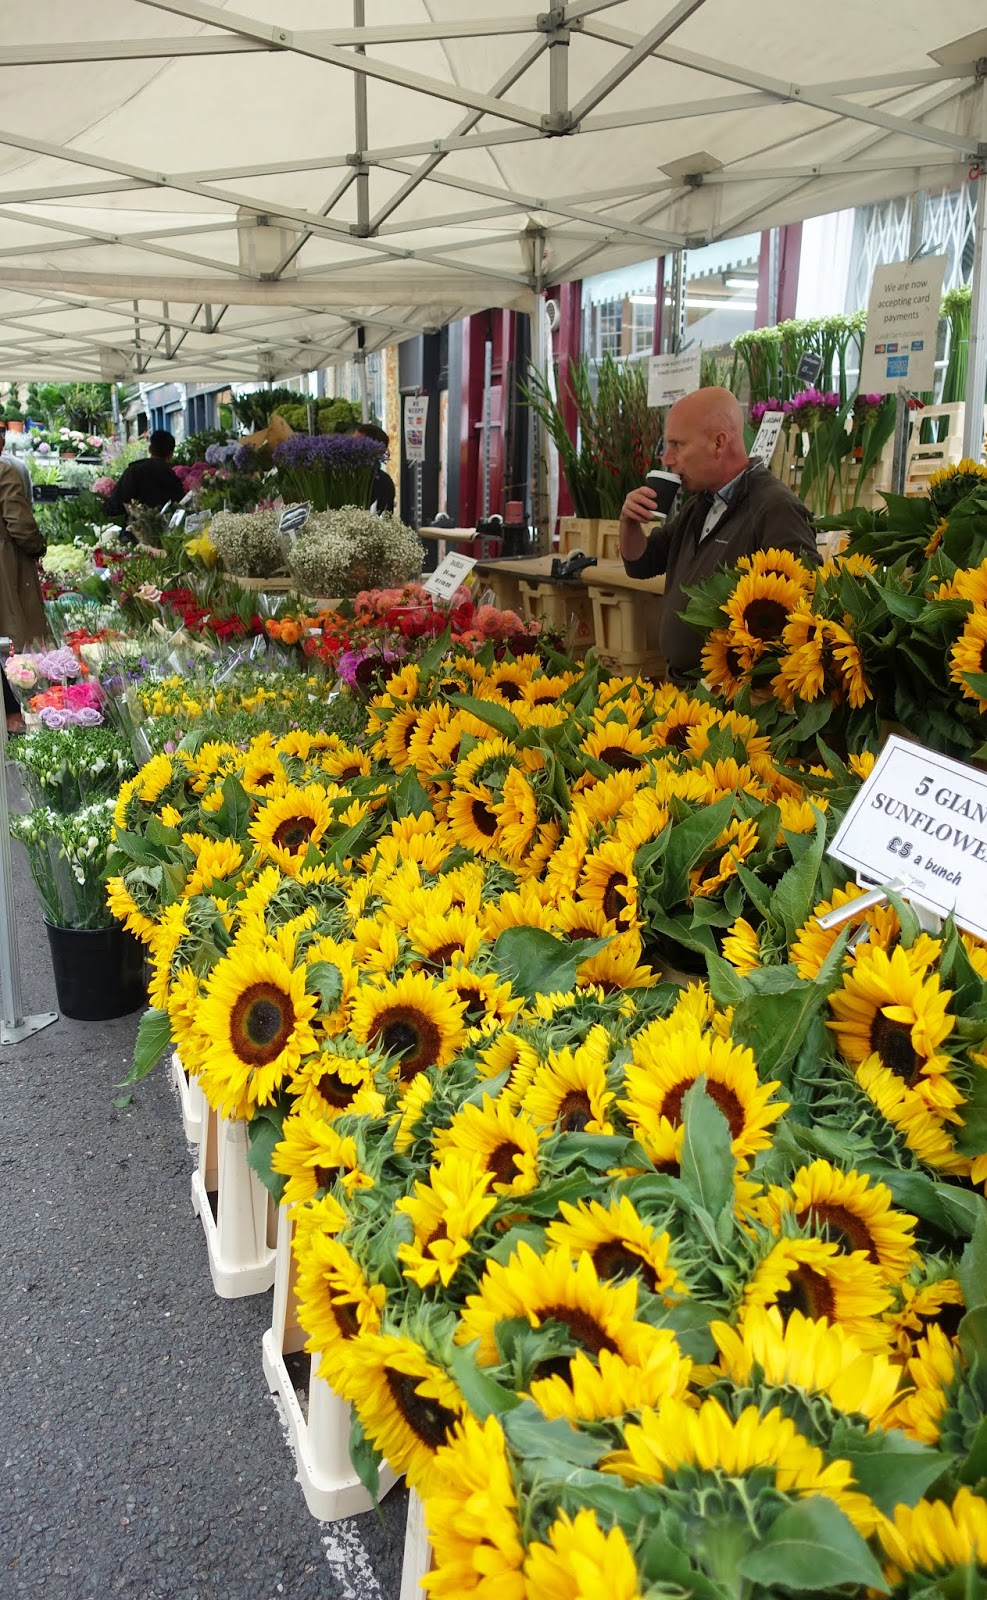 A colourful display of sunflowers at London's Columbia Road flower market